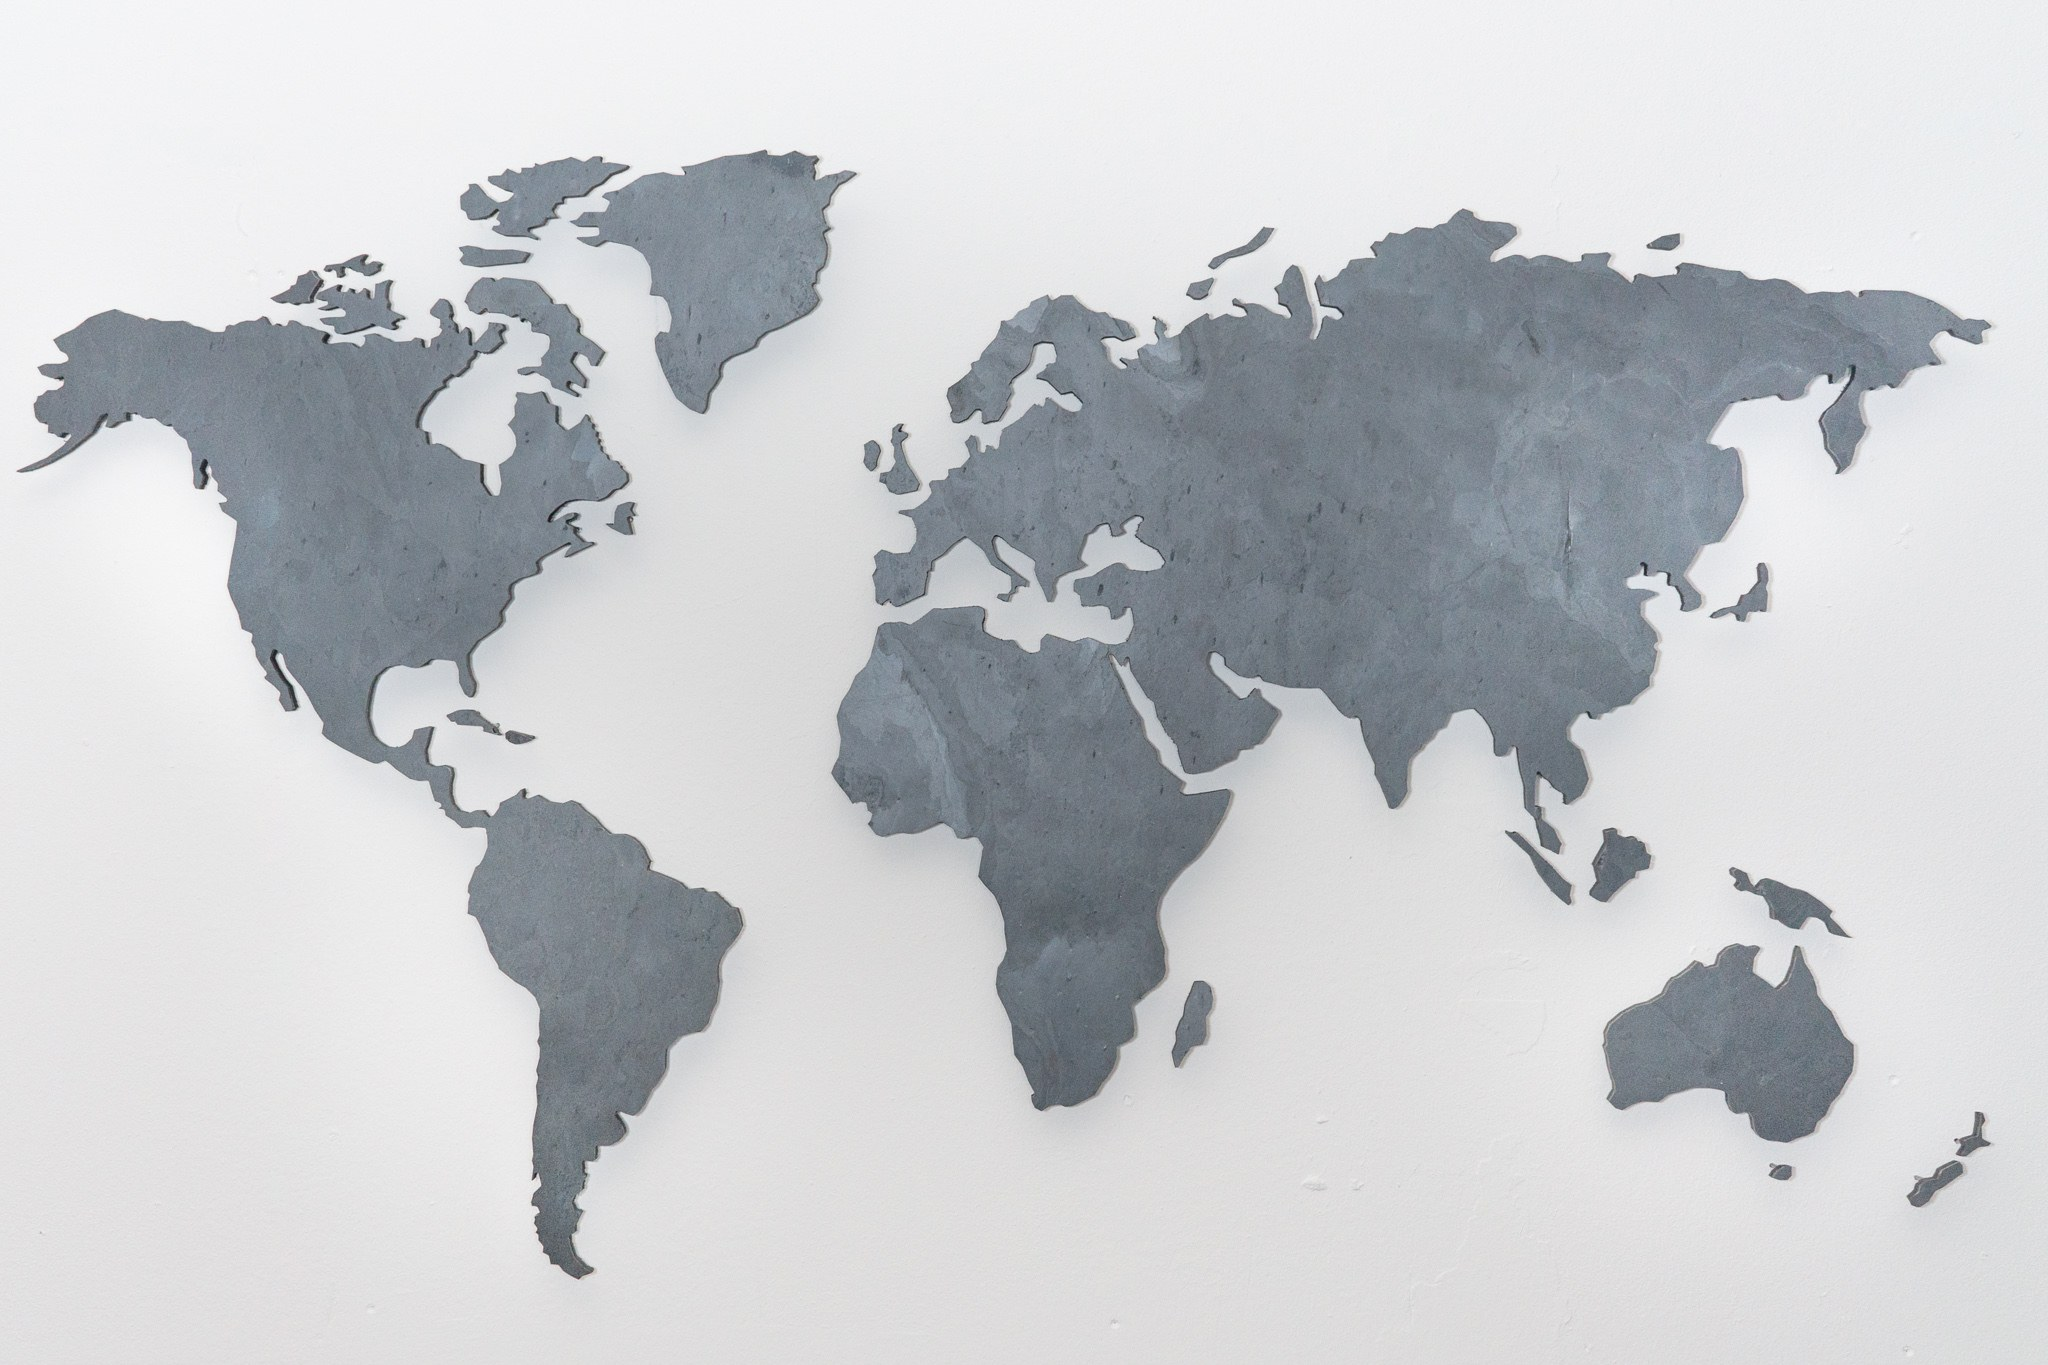 world map slate black world map wall pictures wall pictures world map slate black gumiabroncs Choice Image